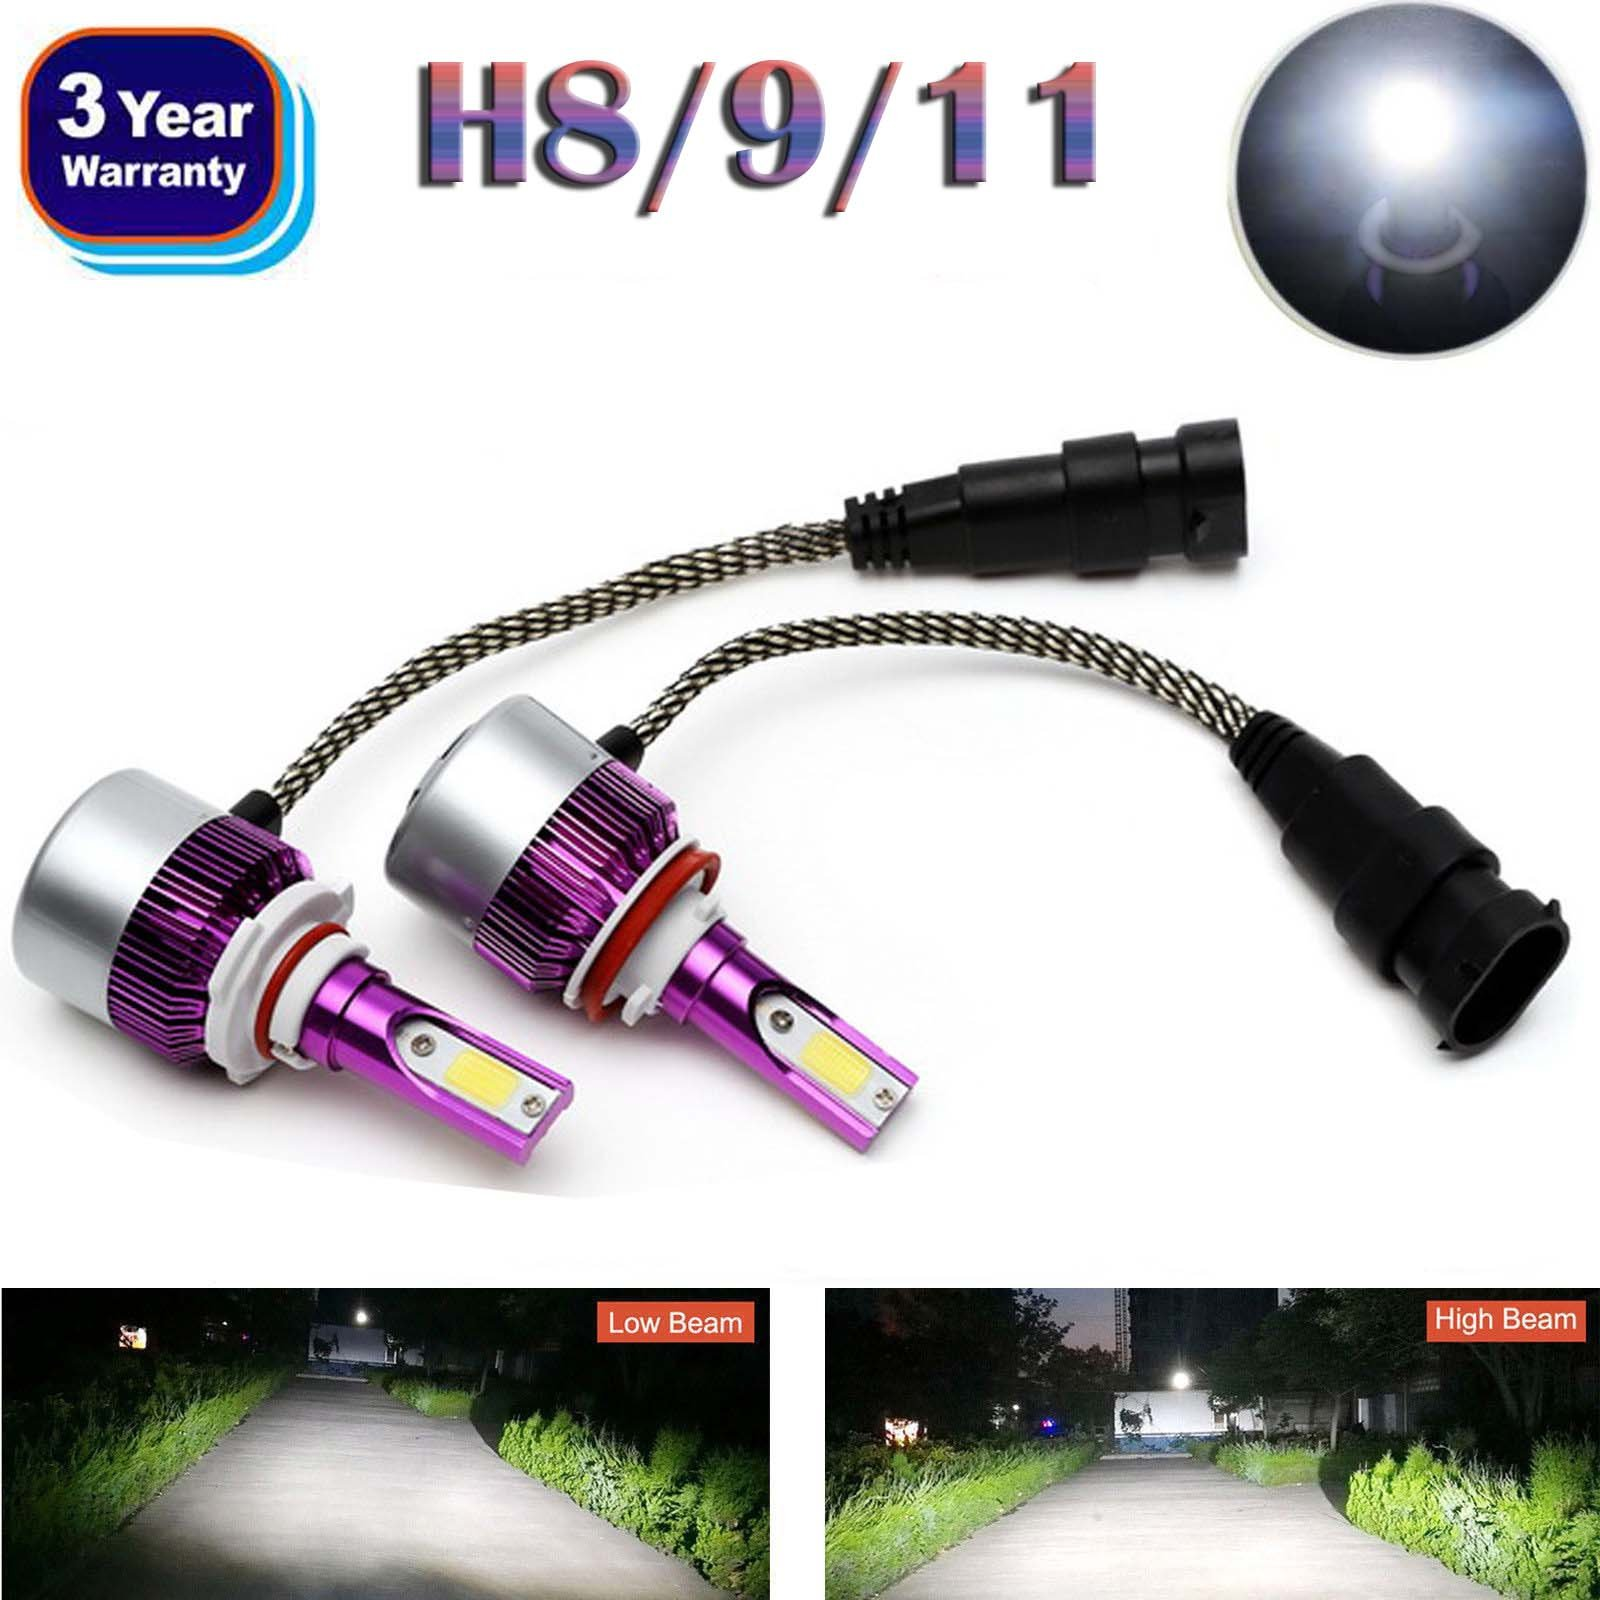 Bowoshen H8 H9 H11 LED Headlight Bulbs All-in-One Conversion Kit High or Low Beam Bulbs 160W Plug & Play - 2 Year Warranty